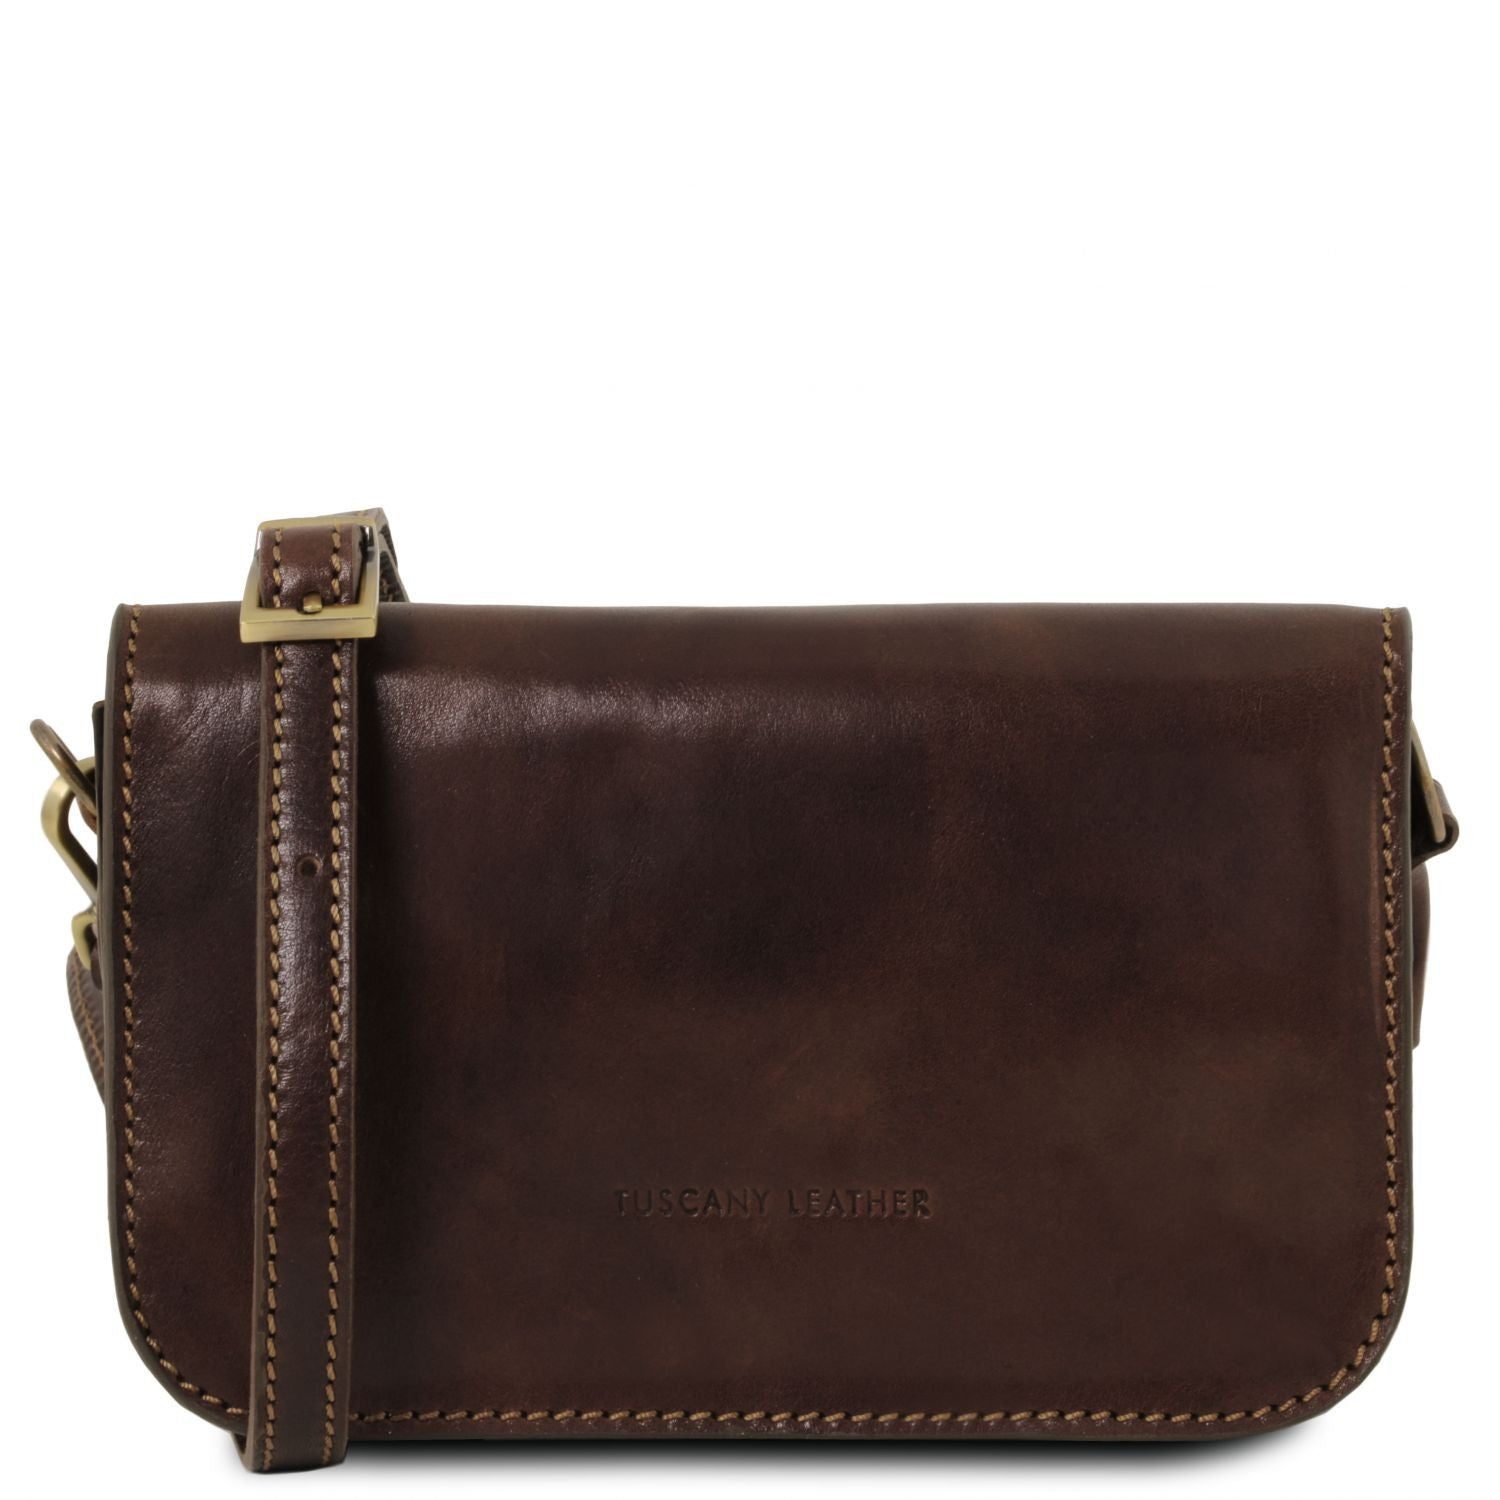 Carmen - Leather shoulder bag with flap (TL141713) - Leather shoulder bags | DILUSSOBAGS